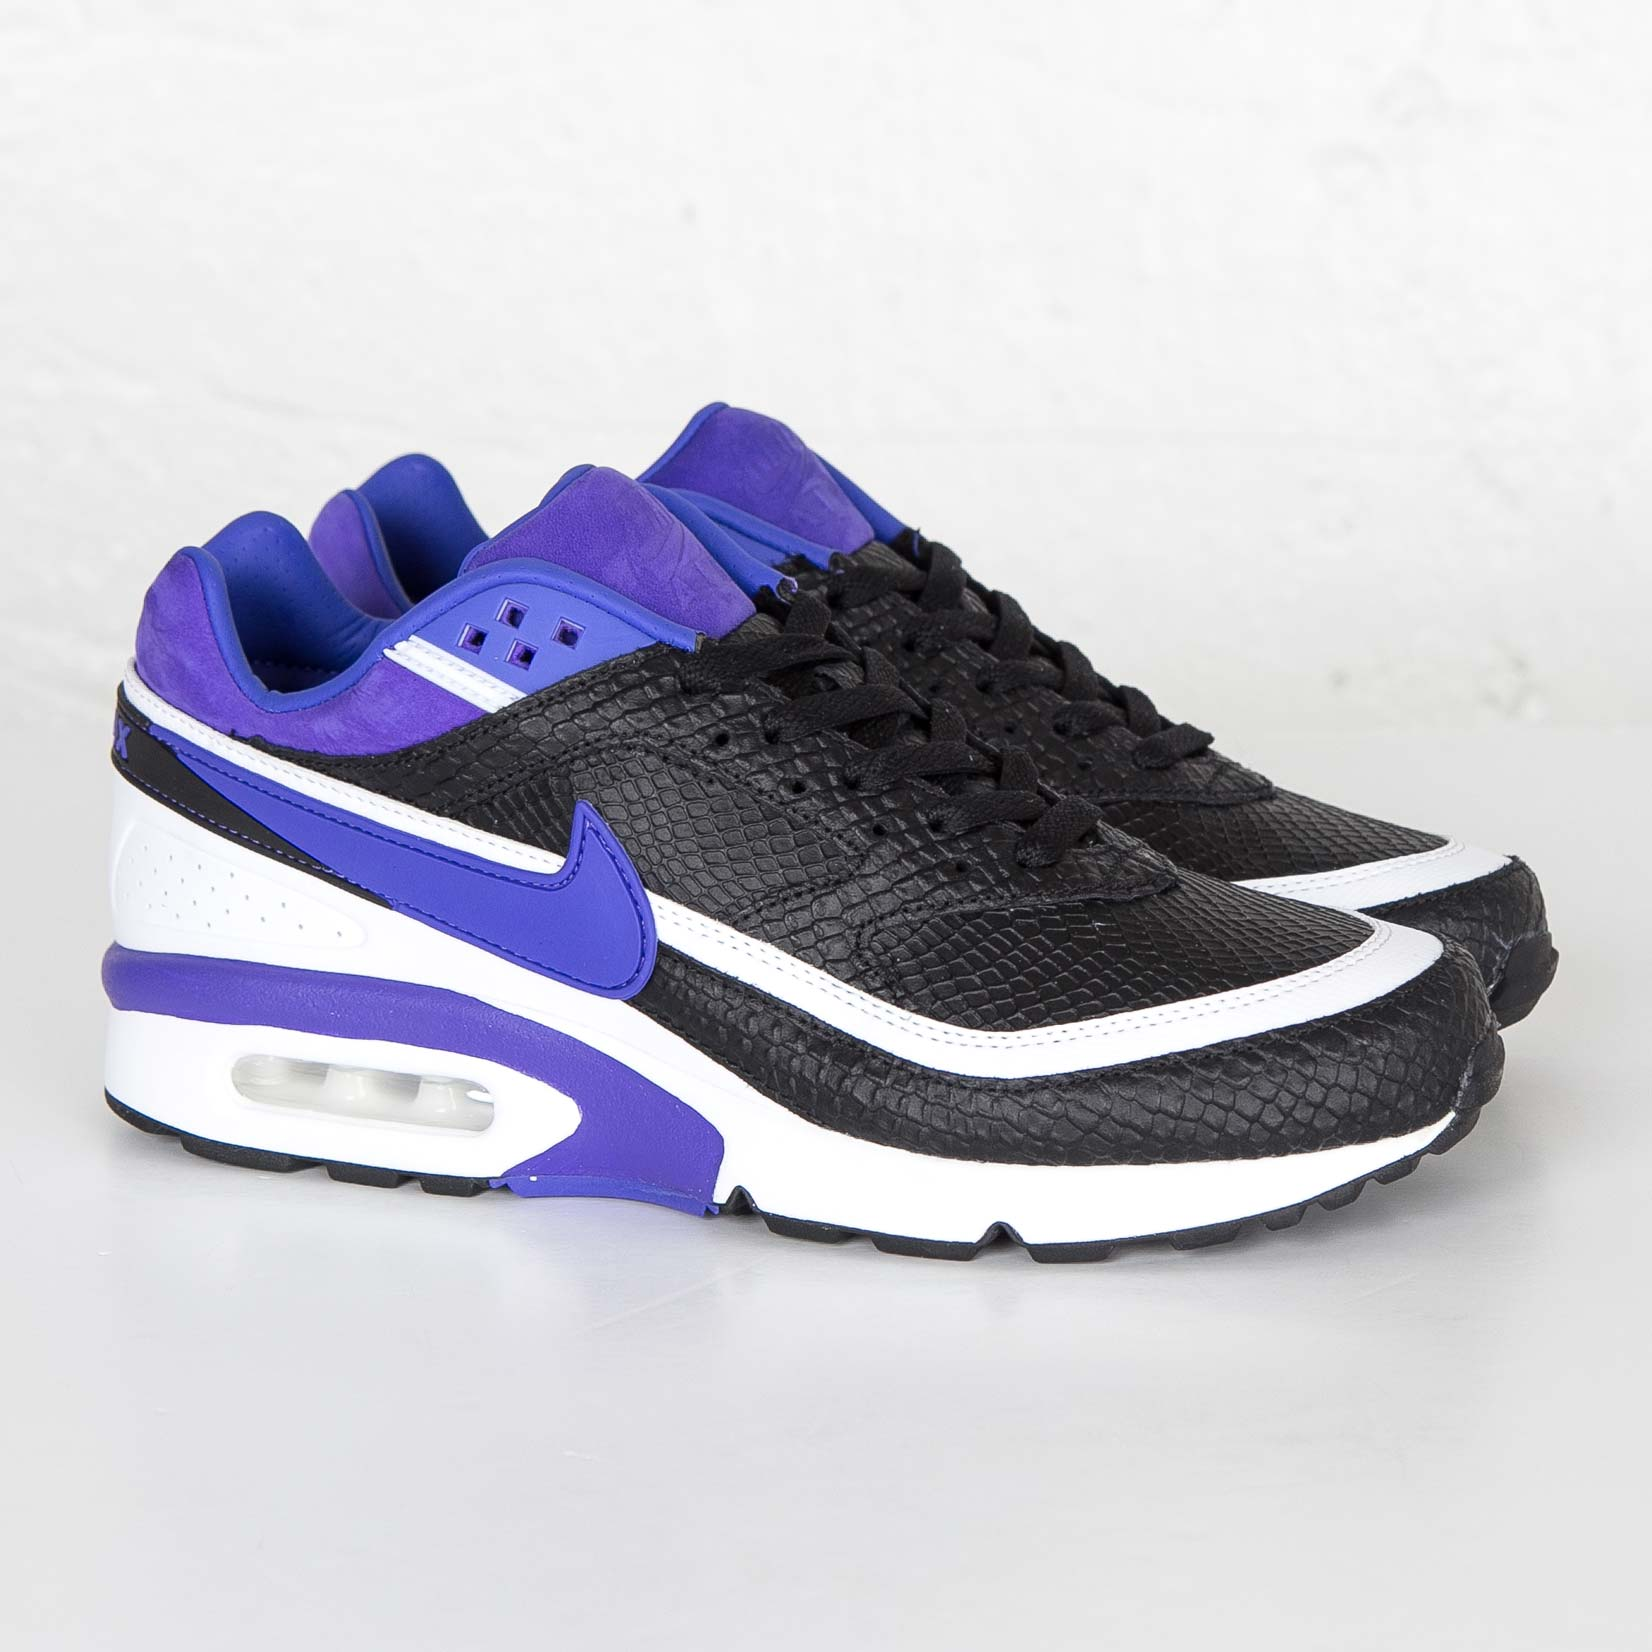 new product a428c 5c75f Nike Air Max BW Premium